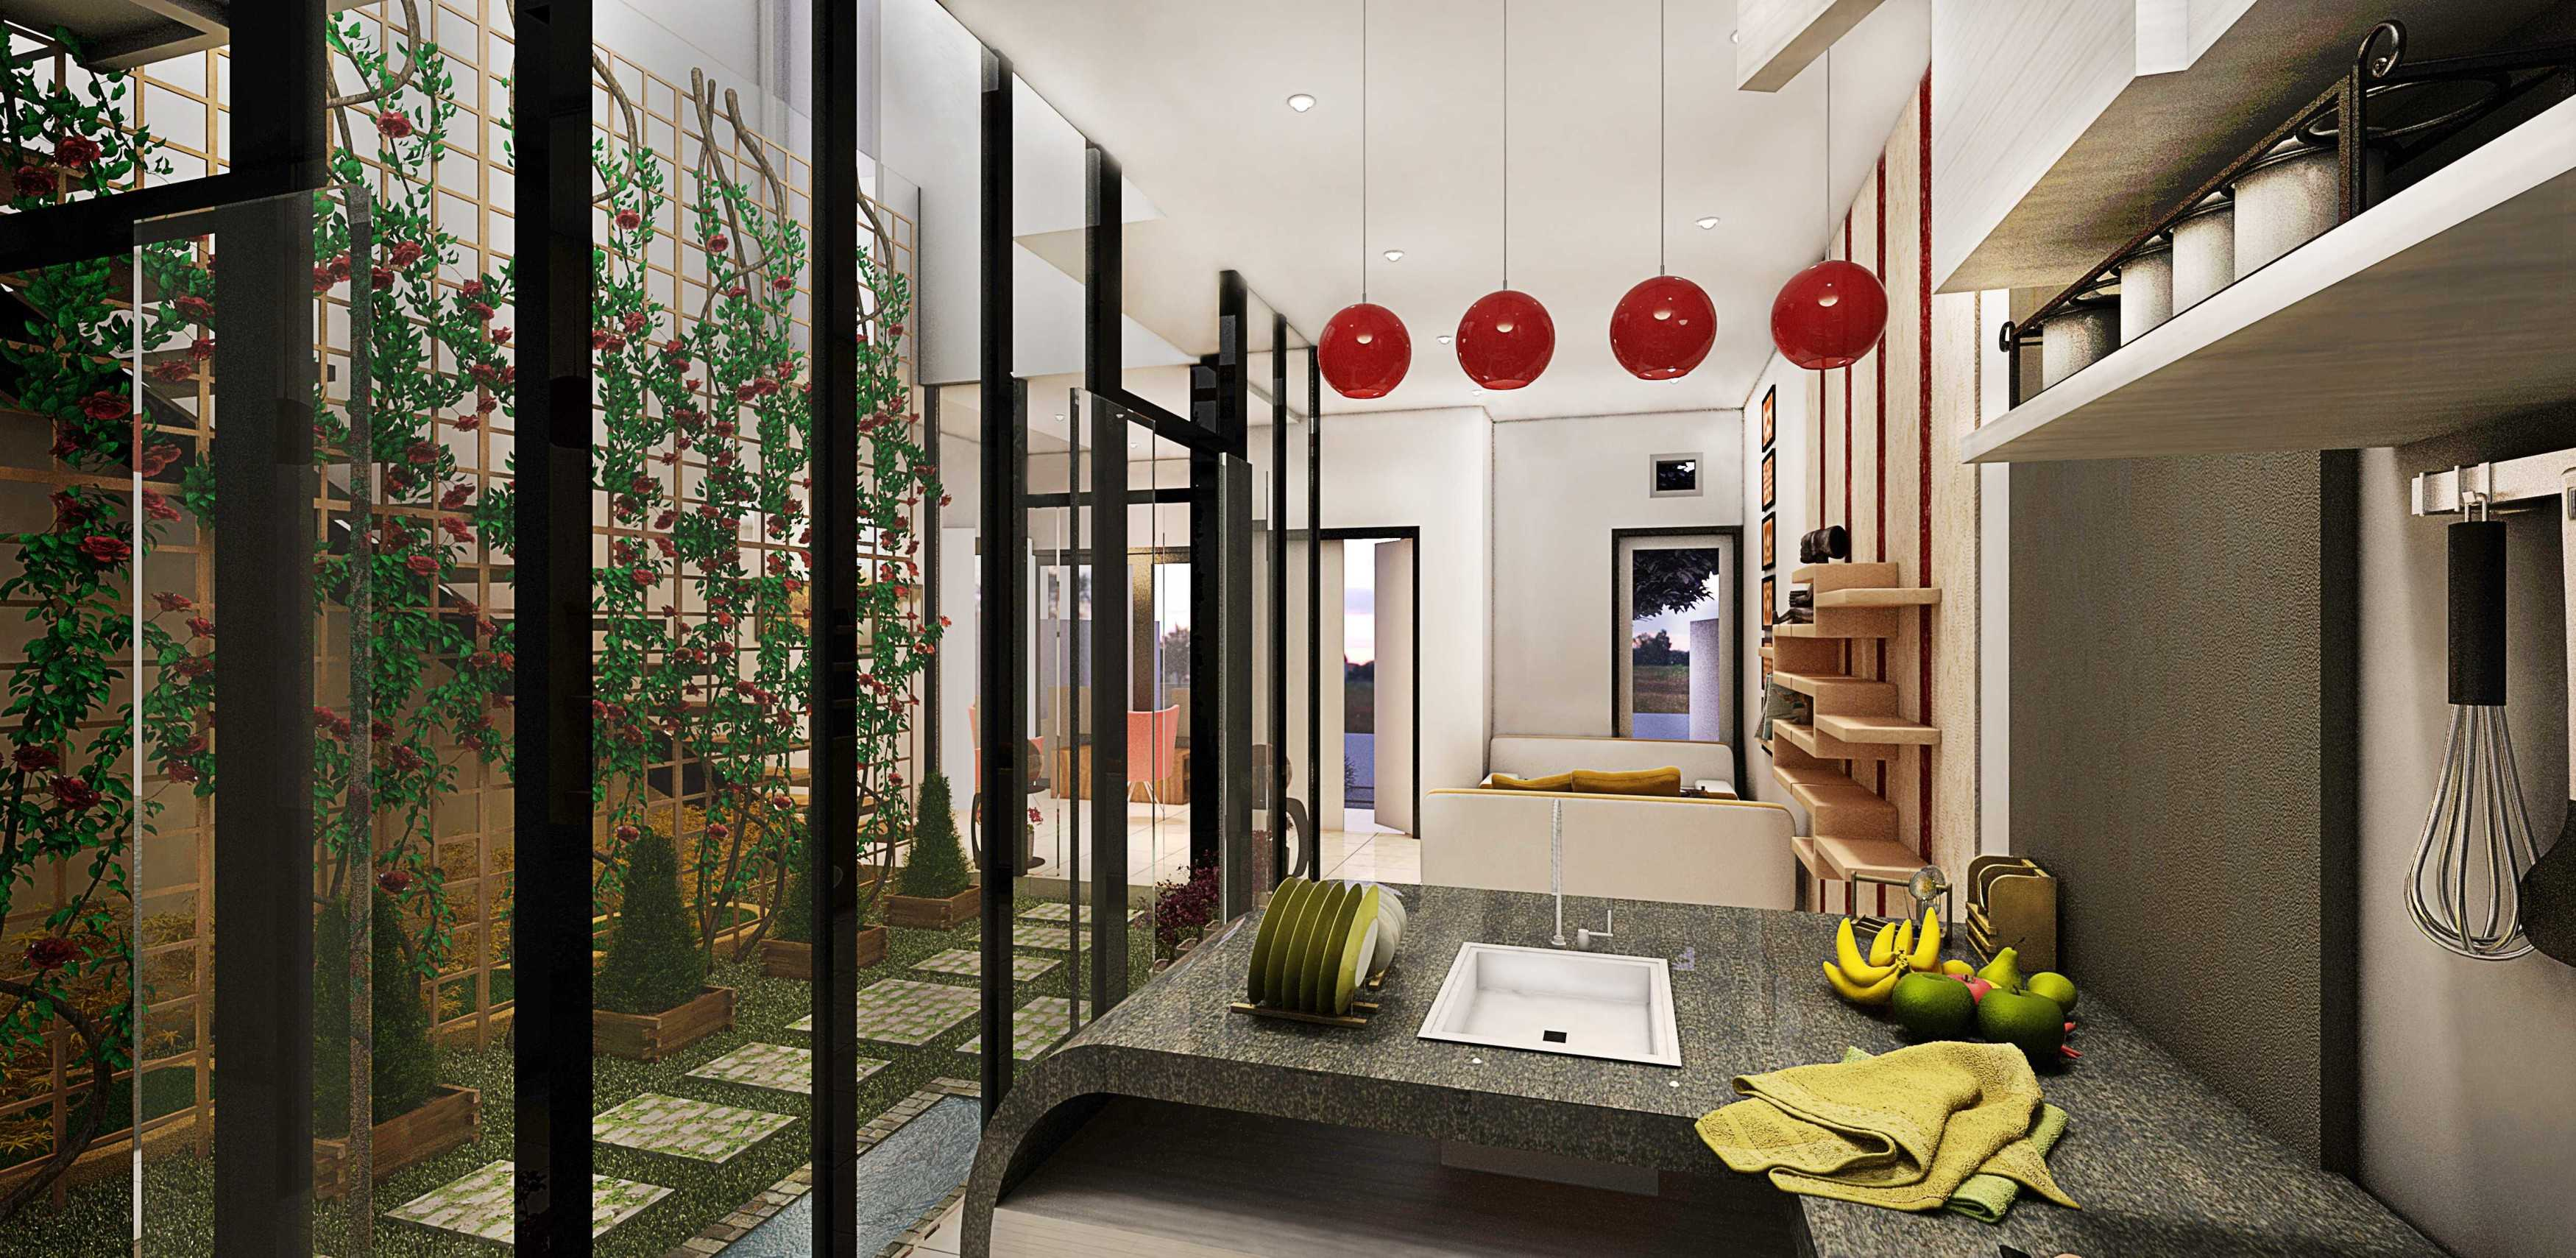 Parades Studio Oase City House Bandung-Indonesia Bandung-Indonesia Kitchen Modern  12345